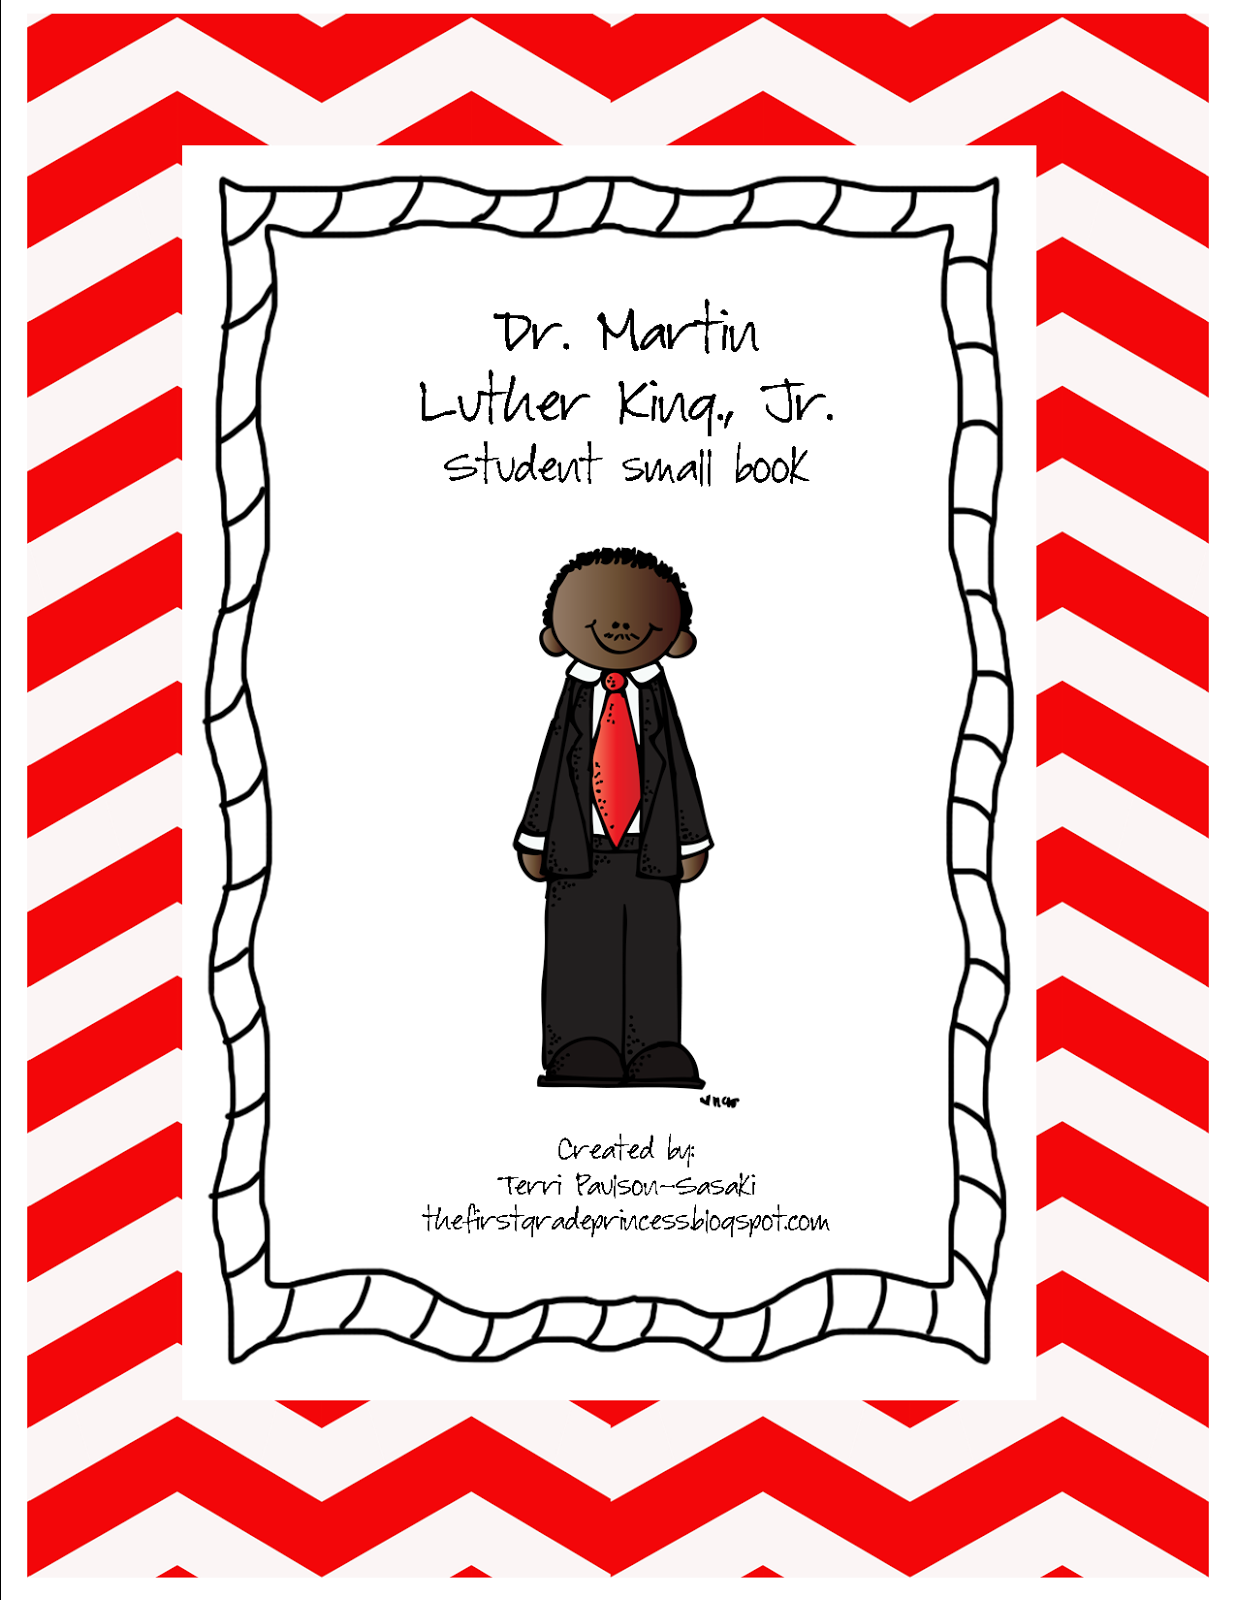 Kinder Princess Martin Luther King Jr